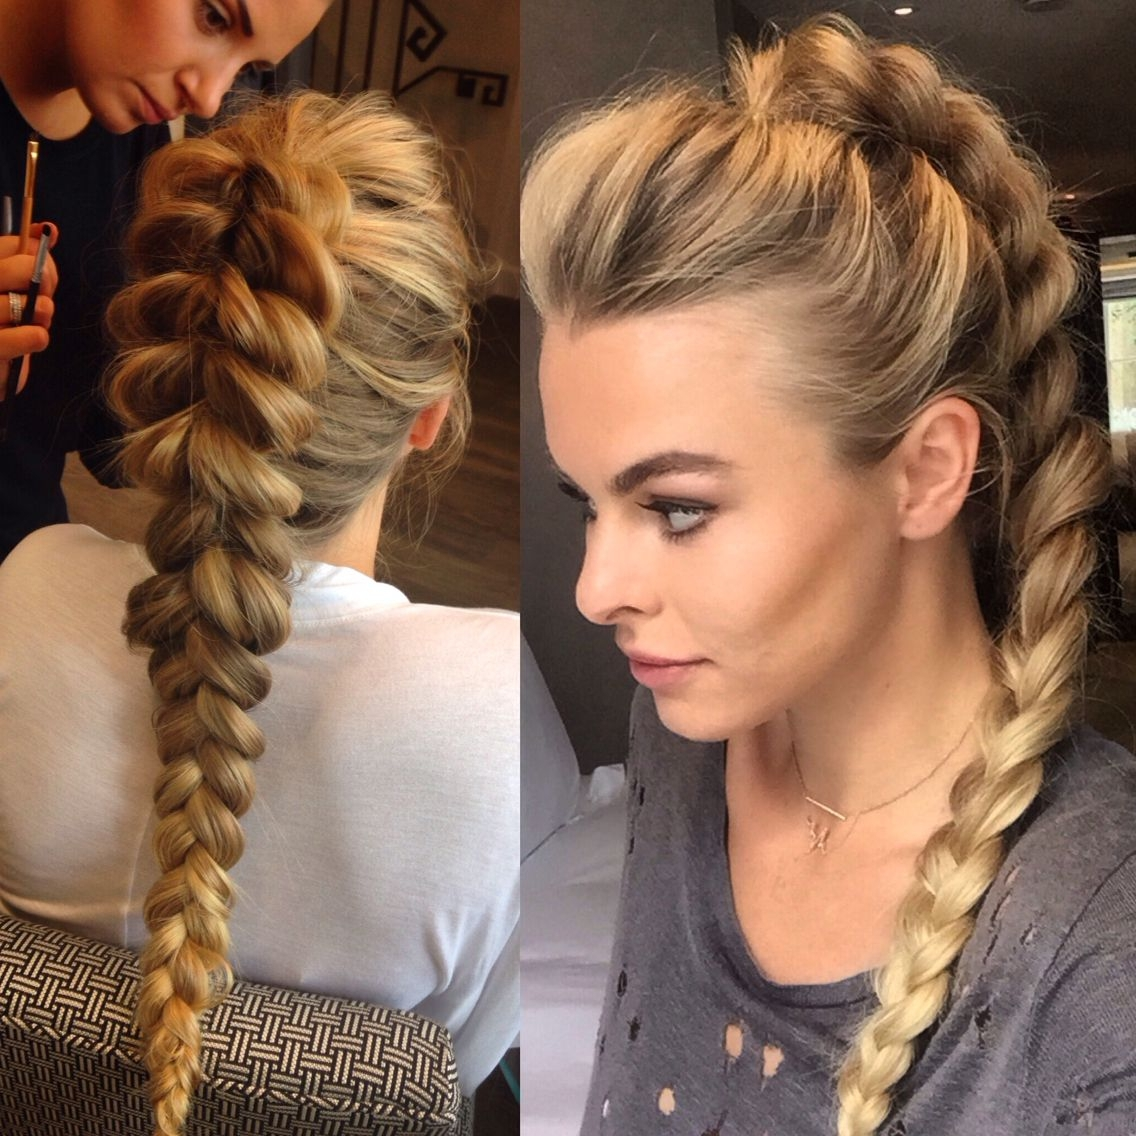 Pull Through Ponytail Braid Braids Amazing Of Braided Hairstyles In Intended For 2017 Ponytail Braided Hairstyles (View 12 of 15)